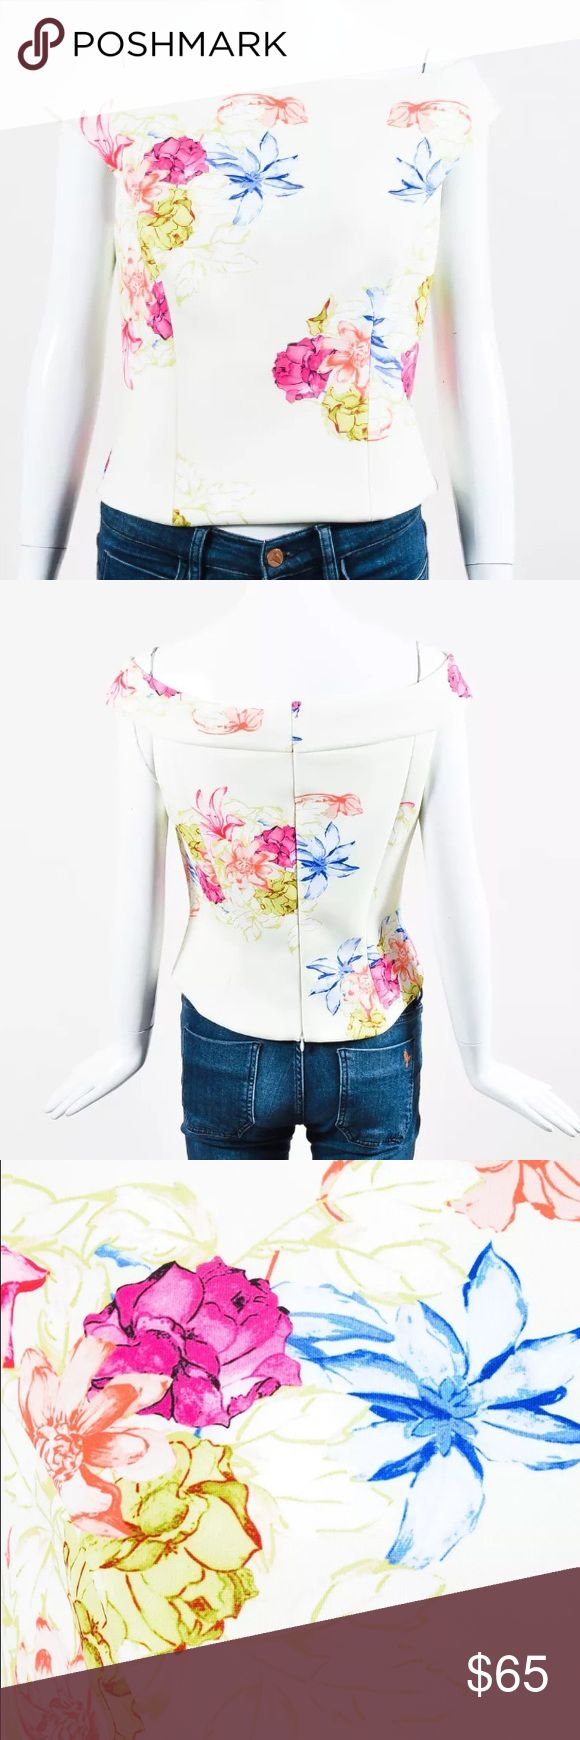 """Kay Unger NWT Neoprene Floral Print Top Kay Unger yellow floral print crop top, featuring a wide boat neckline and style lines throughout. Hidden zip closure. Lined. Measurements*: Total Length: 18.5"""" Shoulder -to- Shoulder: 19"""" Bust: 36"""" Waist: 30"""" Kay Unger Tops"""